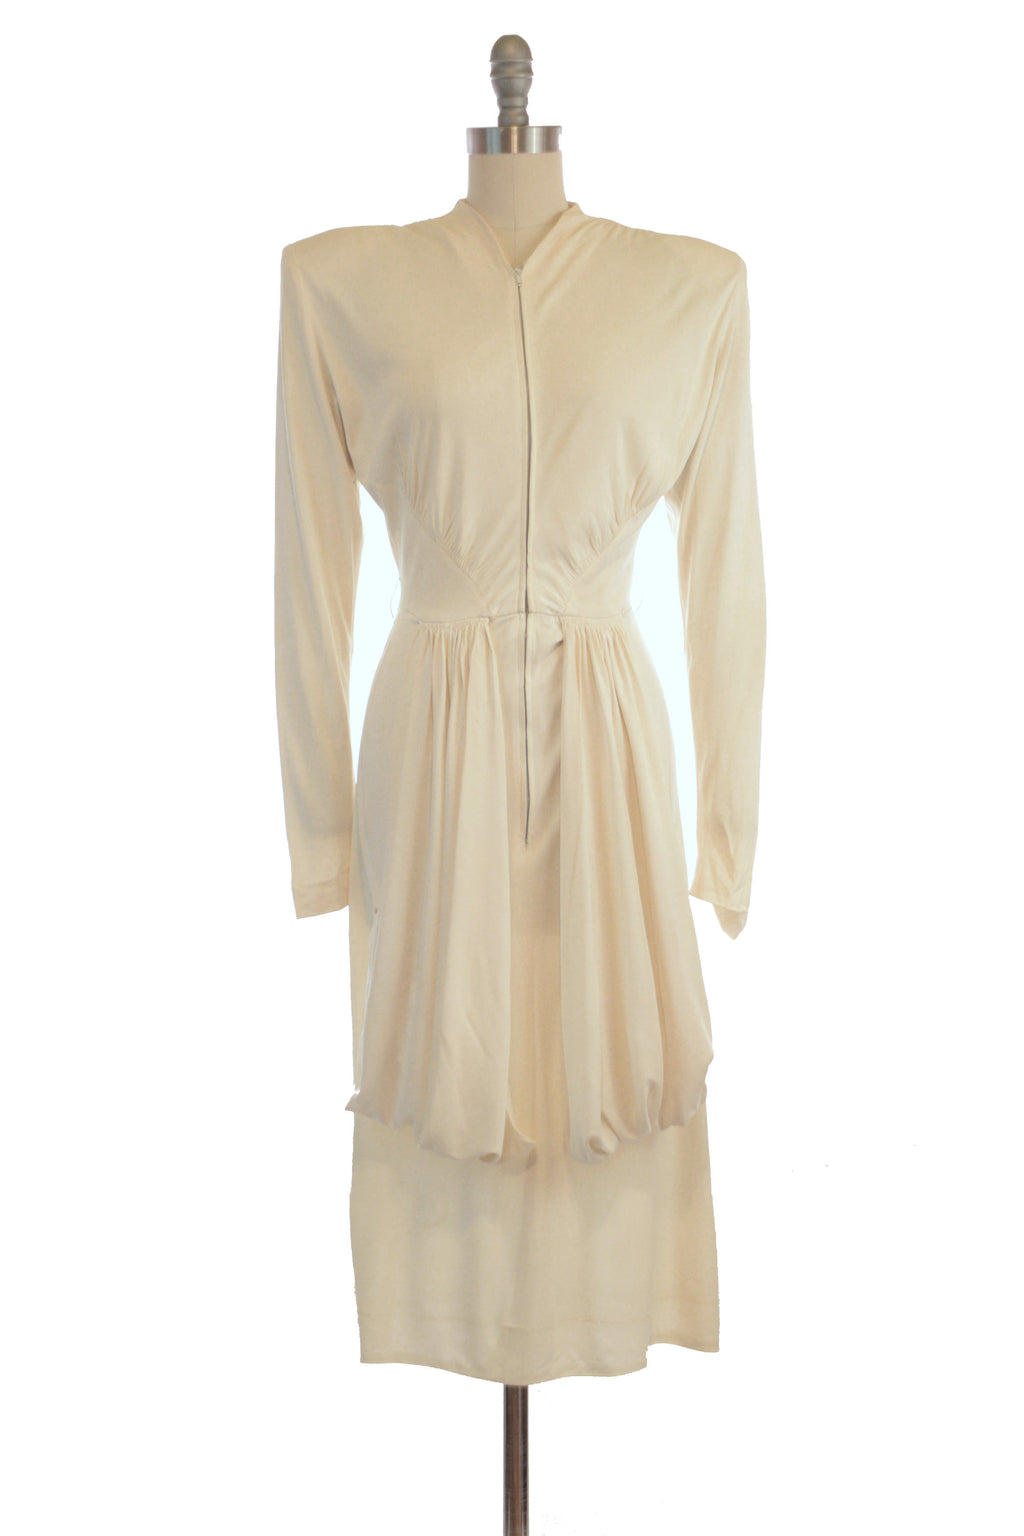 Exceptional 1940s Herbert Sondheim by Troy Stix Designer Cocktail Dress in Ivory Rayon Jersey